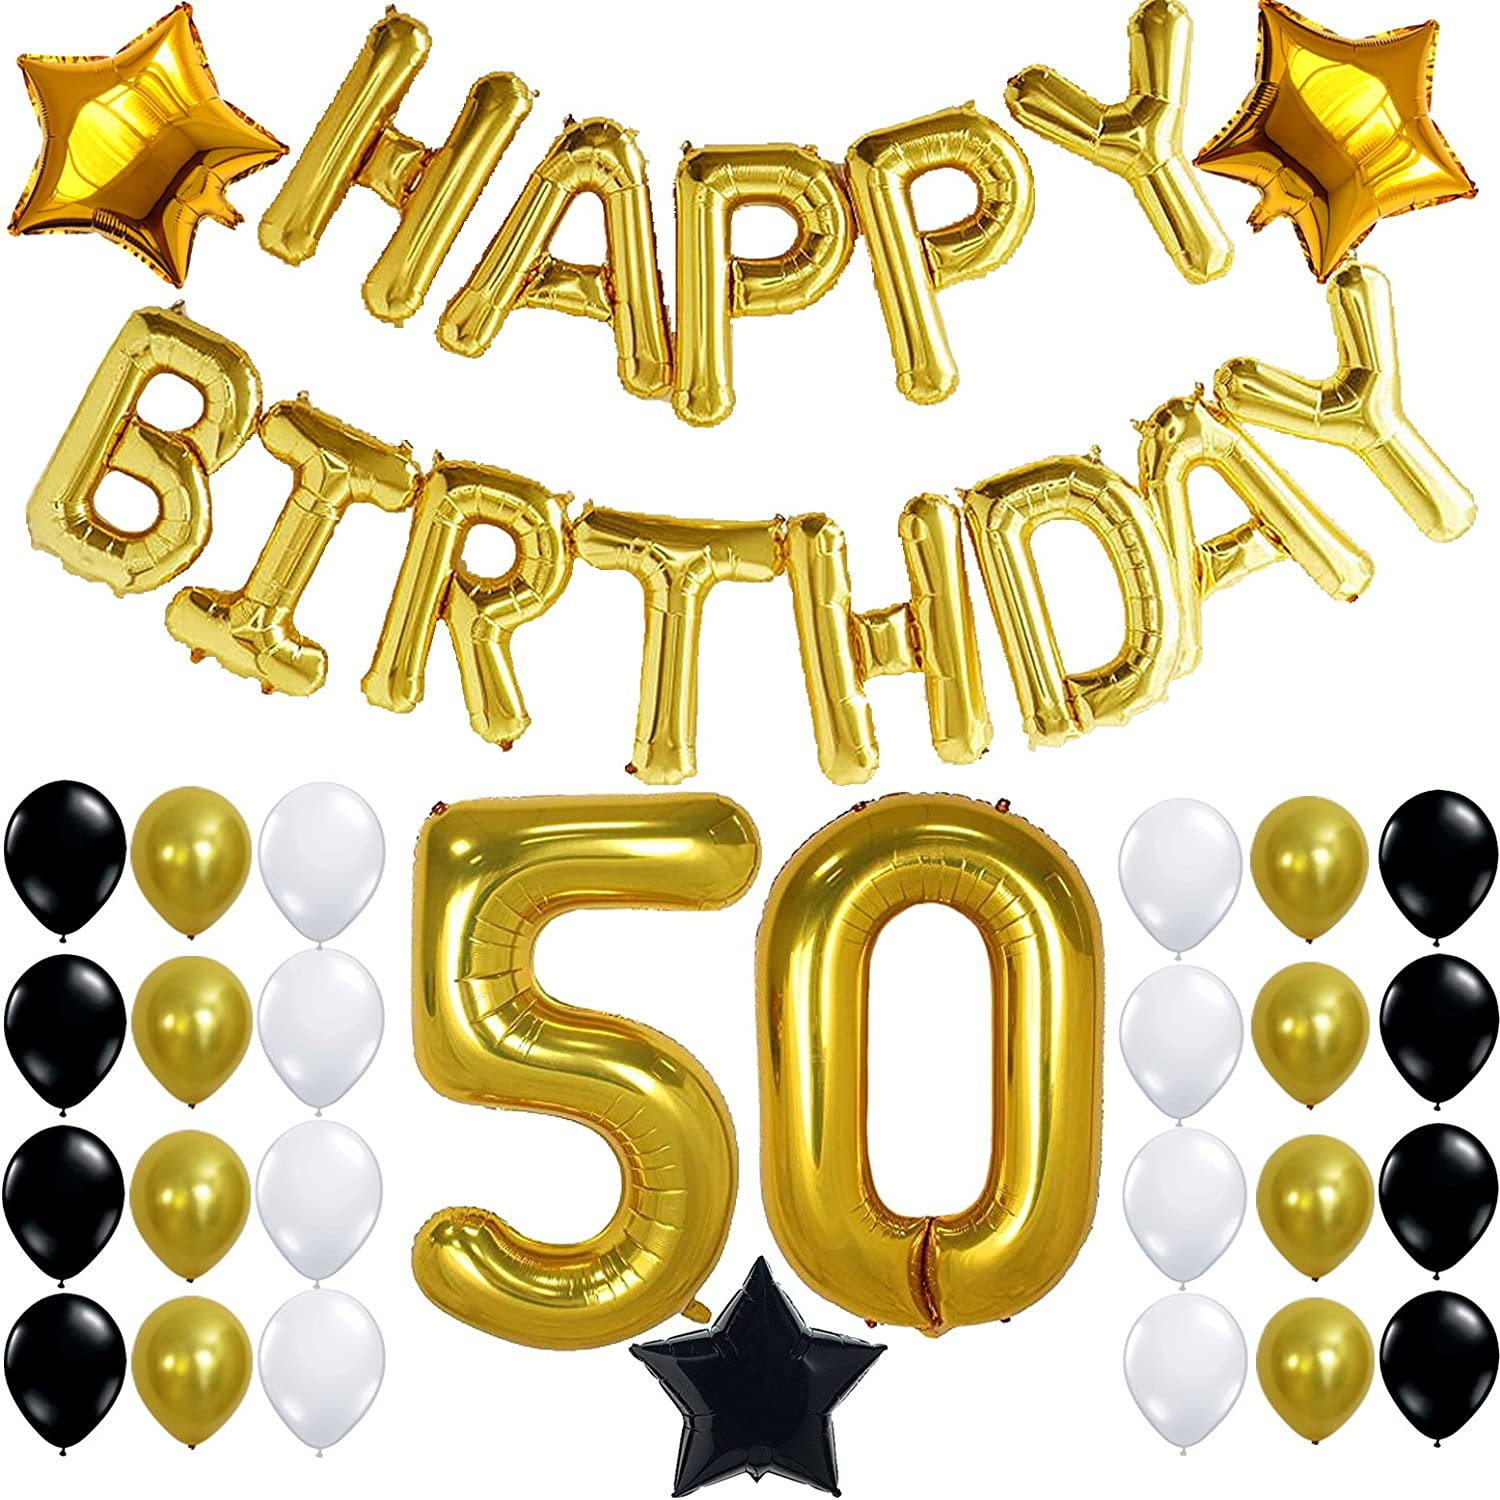 Black White And Gold 50Th Birthday Party Decorations from images-na.ssl-images-amazon.com